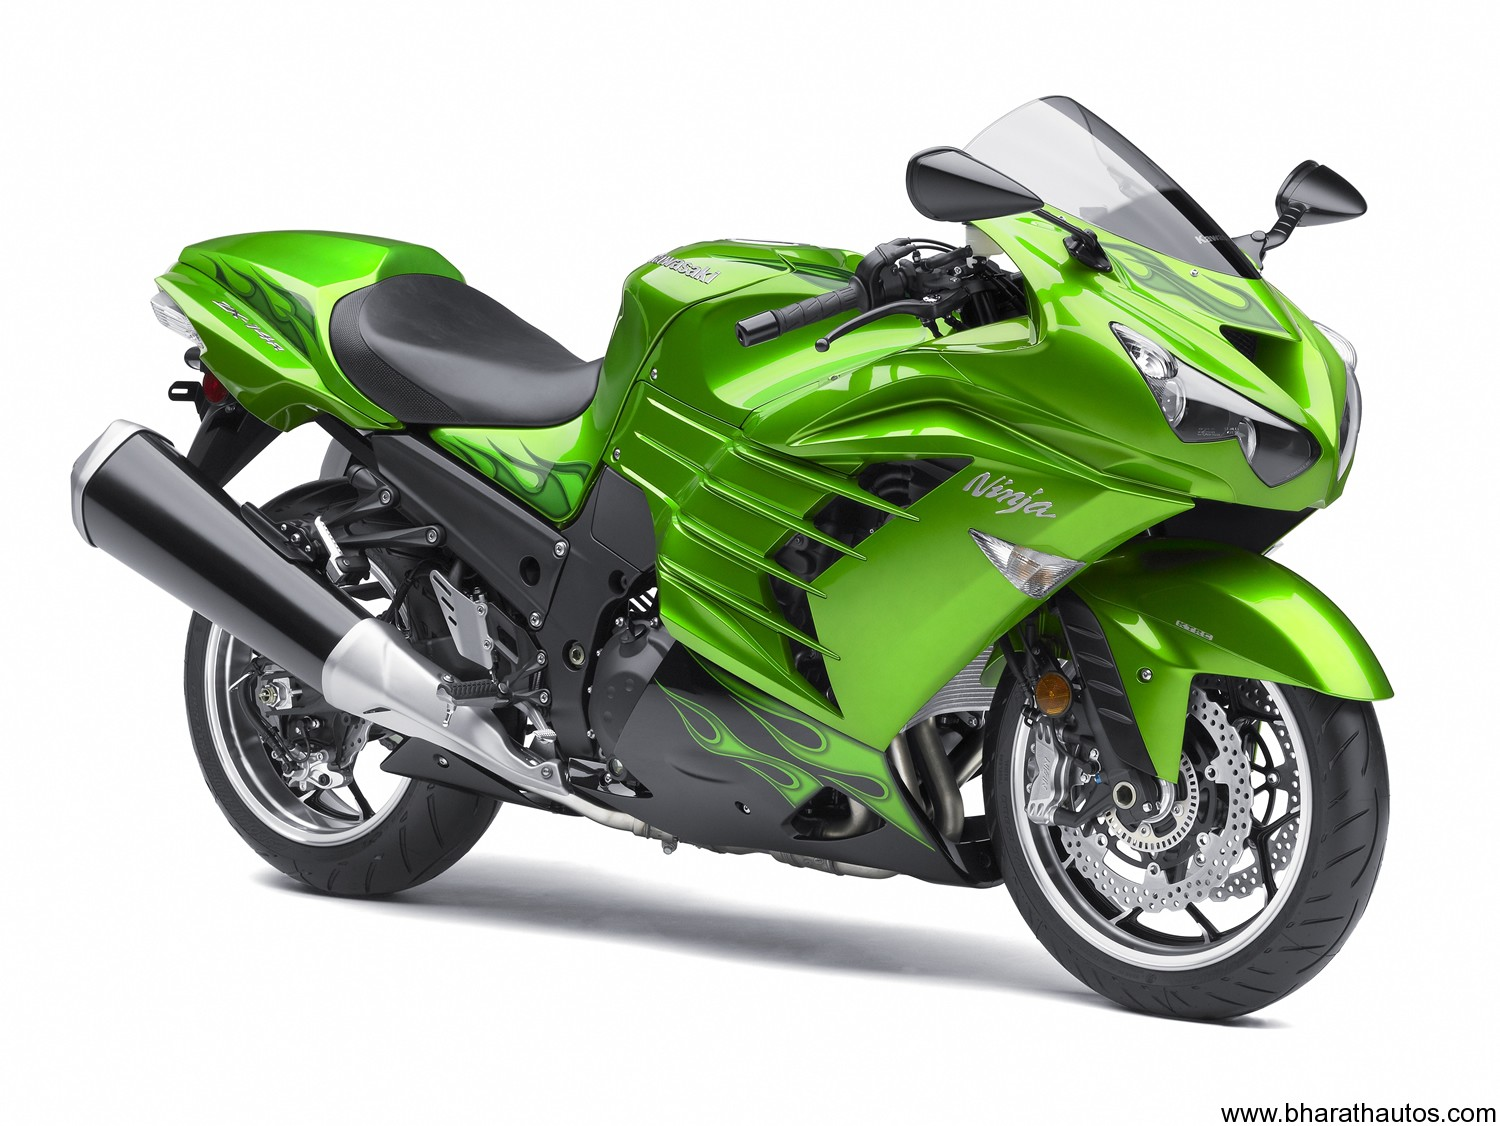 2012 Kawasaki ZZR1400 is the world's fastest motorcycle